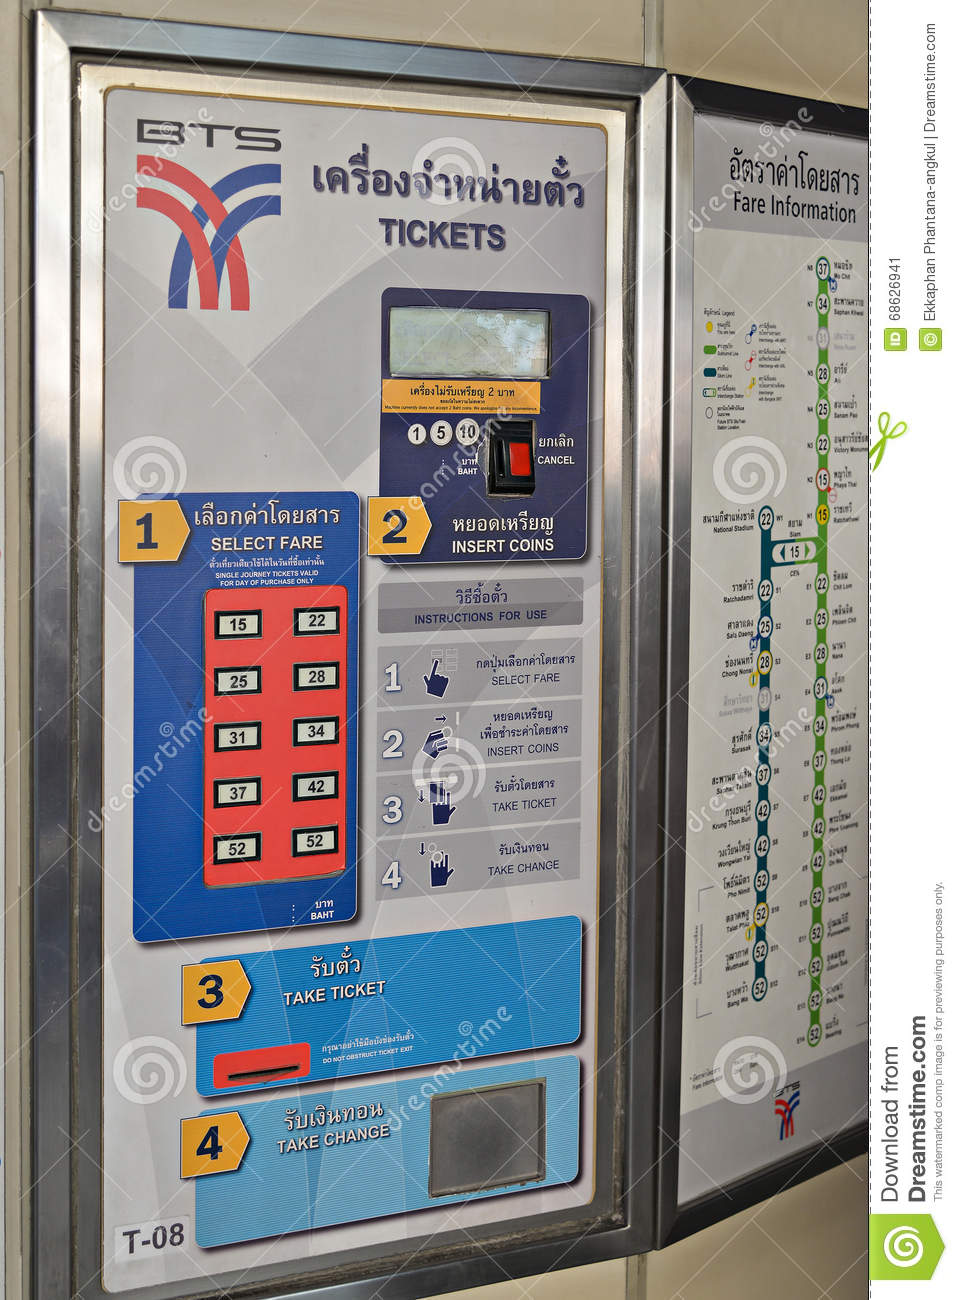 Automatic ticket selling machine in BTS station